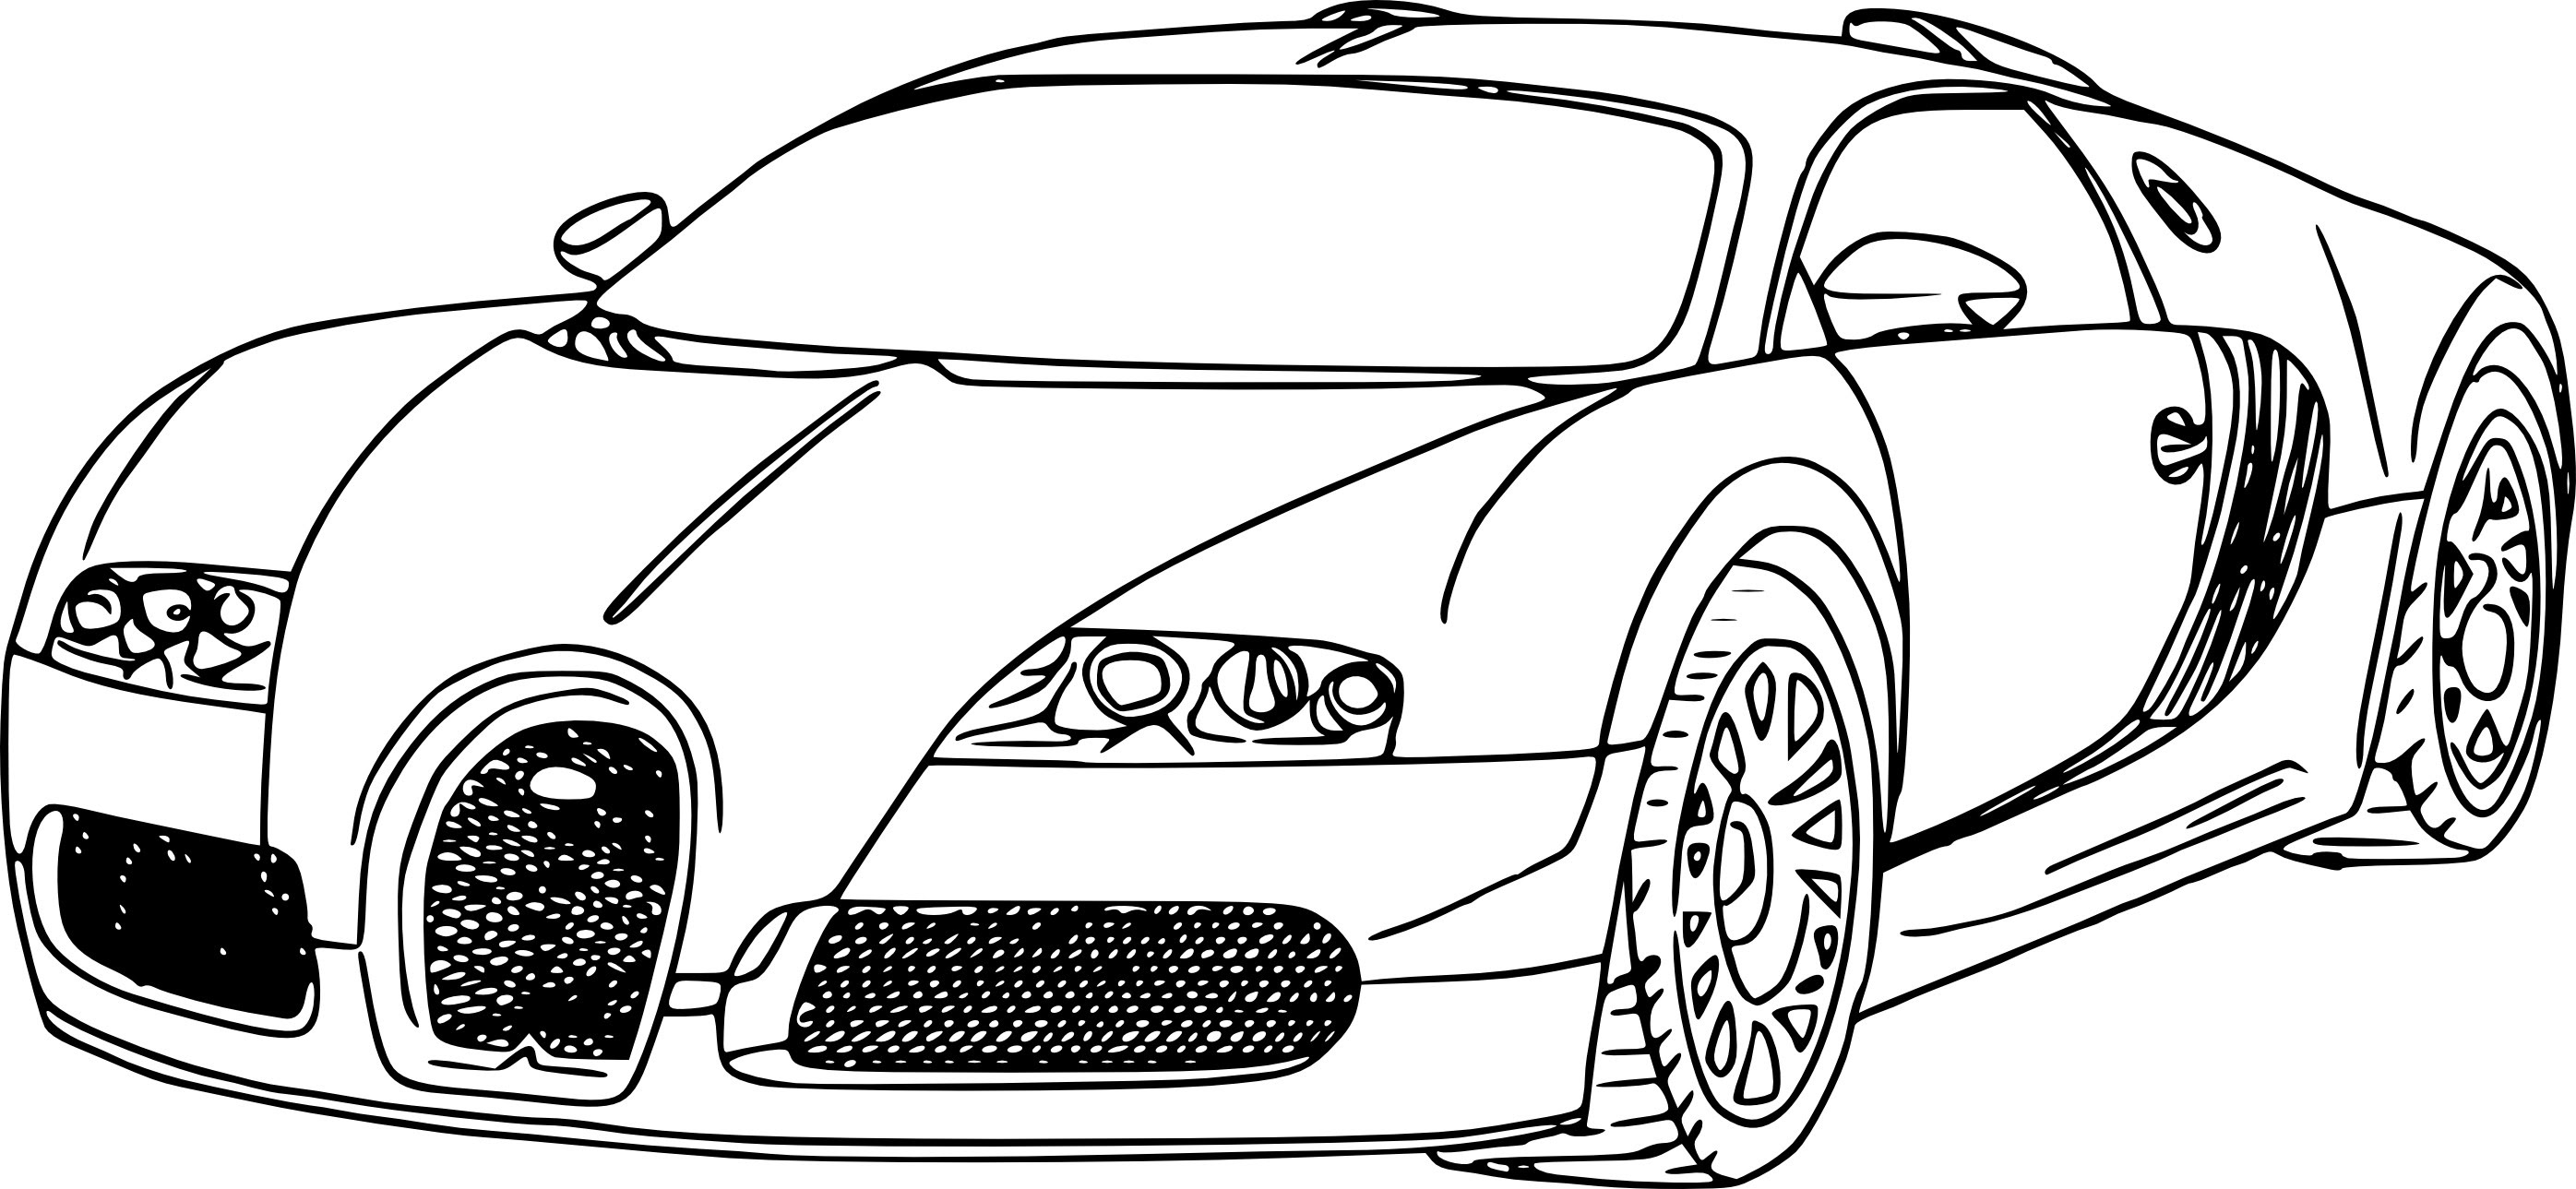 Bugatti Chiron Coloring Page At Getdrawings Free Download